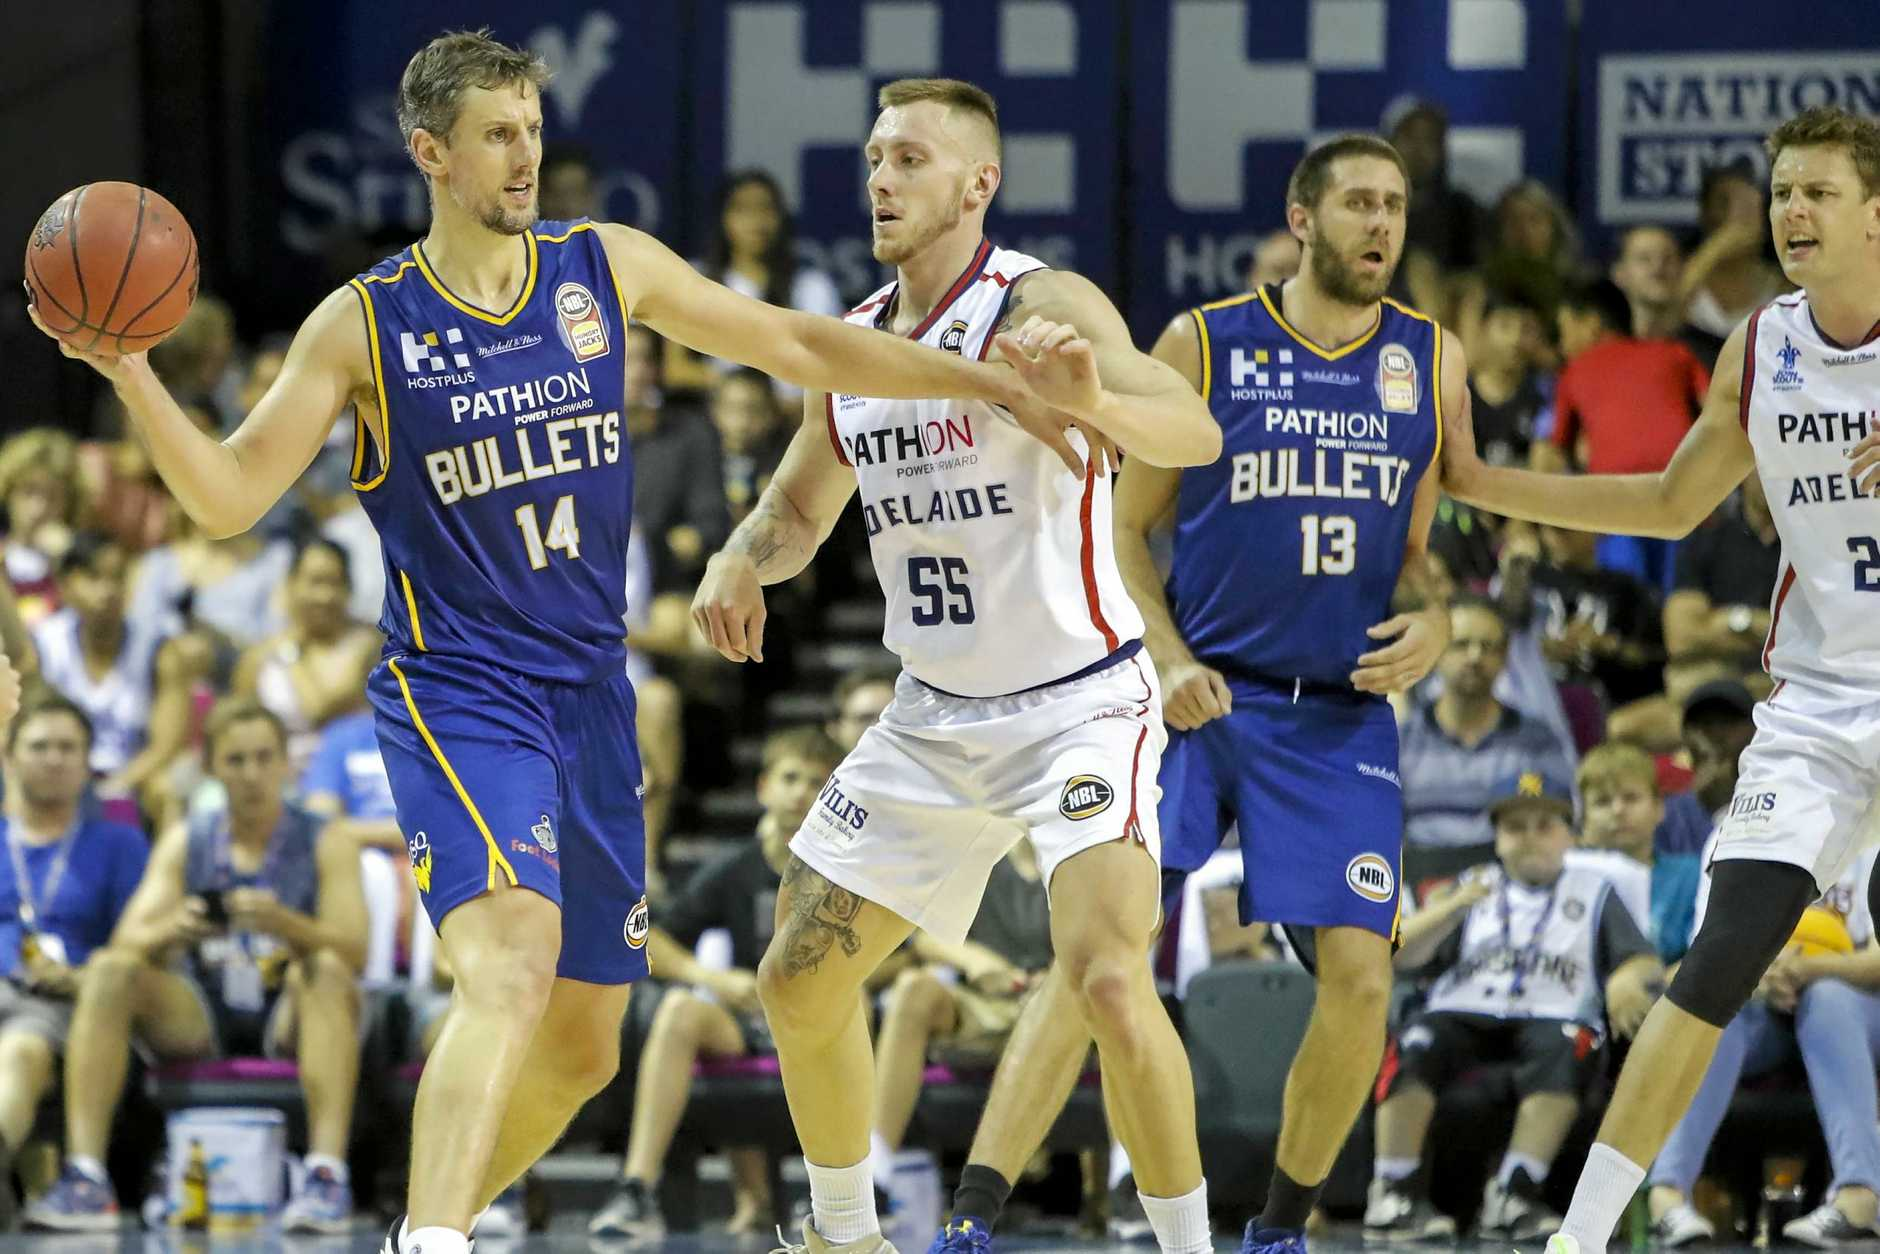 Daniel Kickert (left) of the Bullets is guarded by Mitchell Creek of the 36ers during the round 13 NBL match between the Brisbane Bullets and the Adelaide 36ers at the Brisbane Convention and Exhibition Centre, Brisbane, Sunday, January 7, 2018. (AAP Image/Glenn Hunt) NO ARCHIVING, EDITORIAL USE ONLY